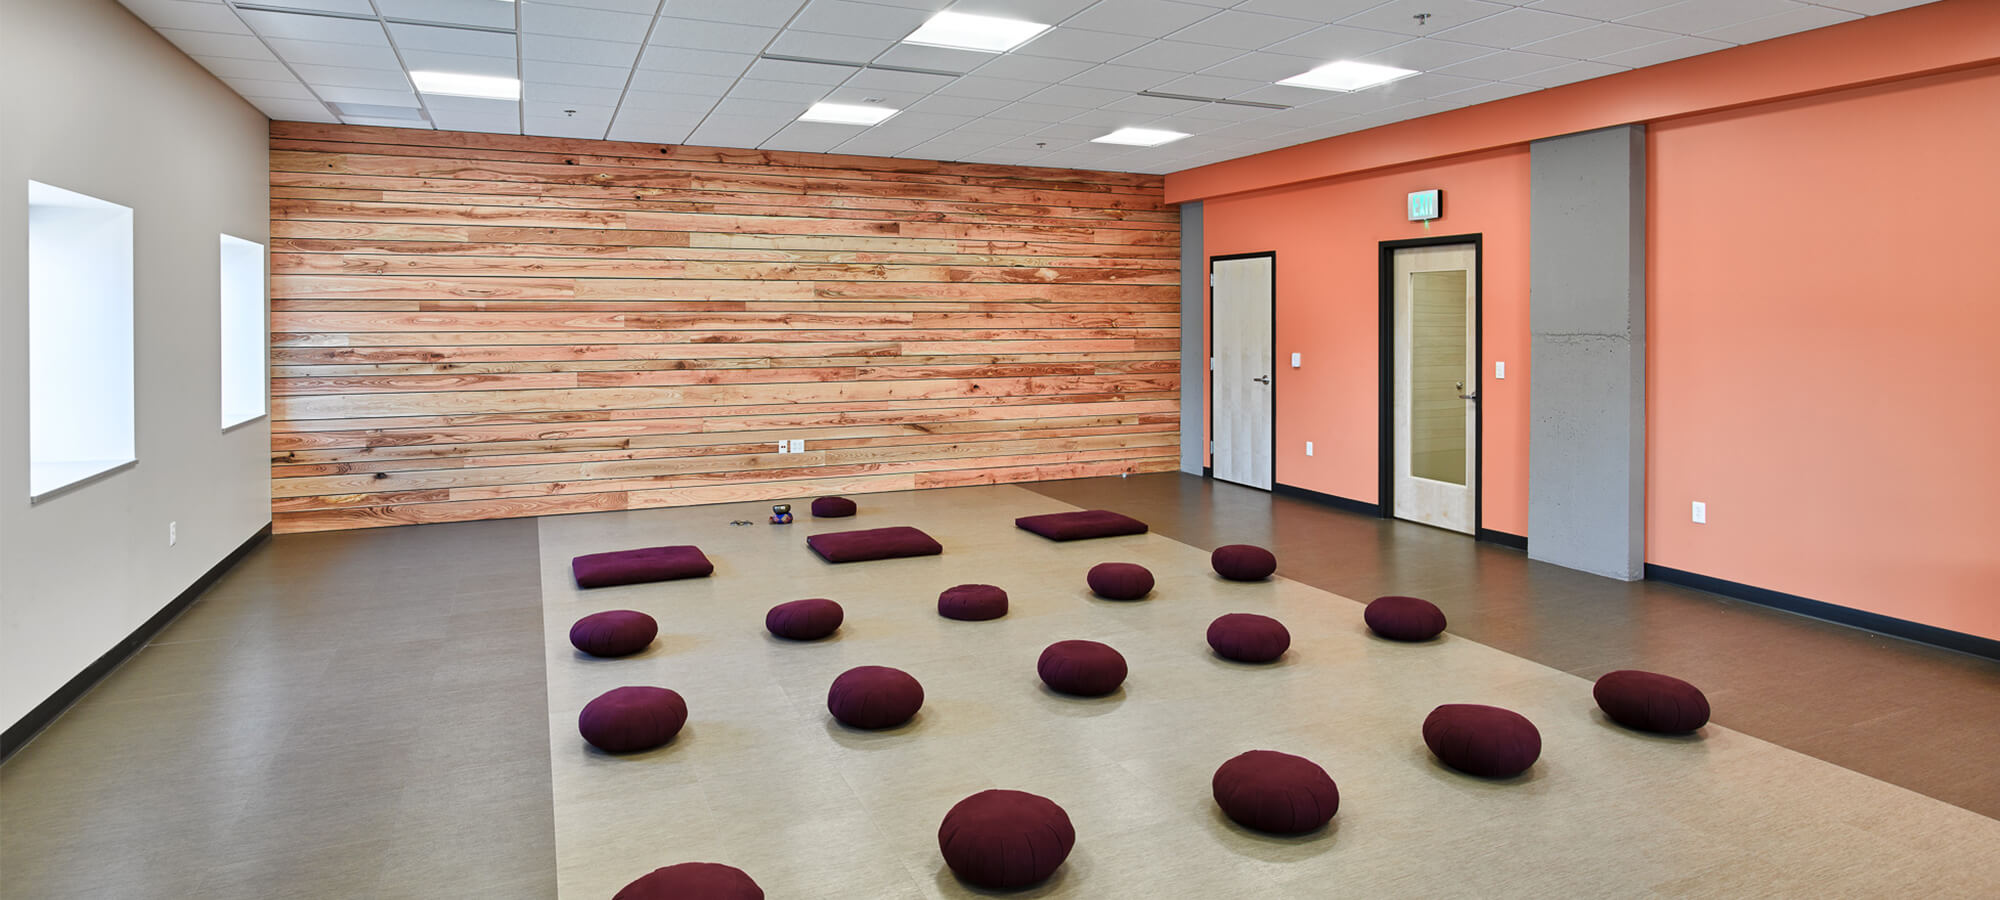 Meditation room with sitting pillows placed in rows across the floor